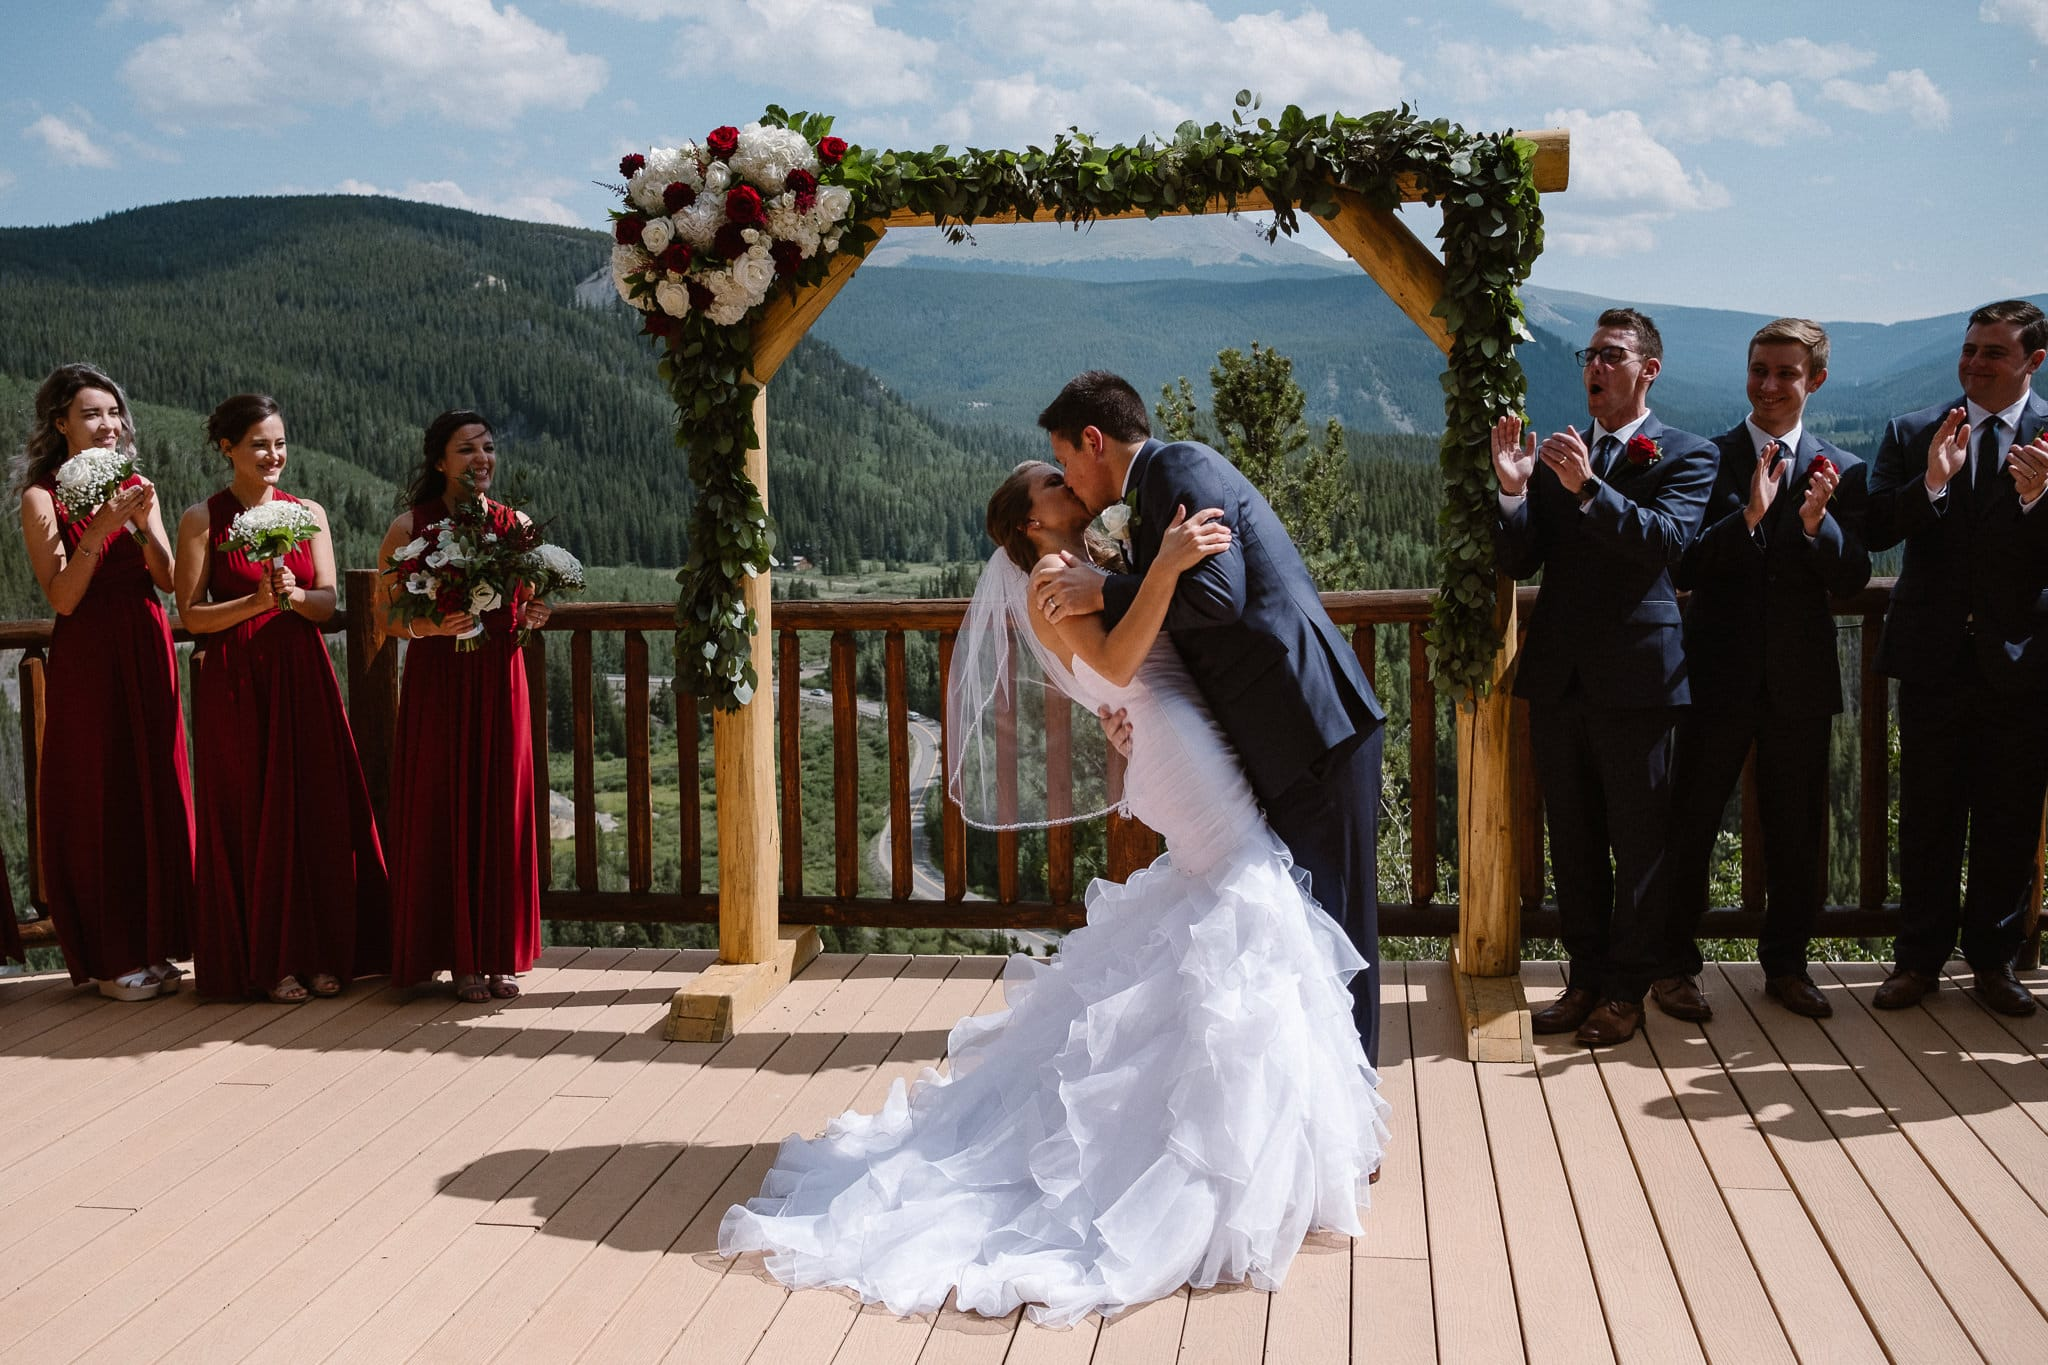 The Lodge at Breckenridge Wedding Photographer, Colorado mountain elopement photographer, bride and groom first kiss